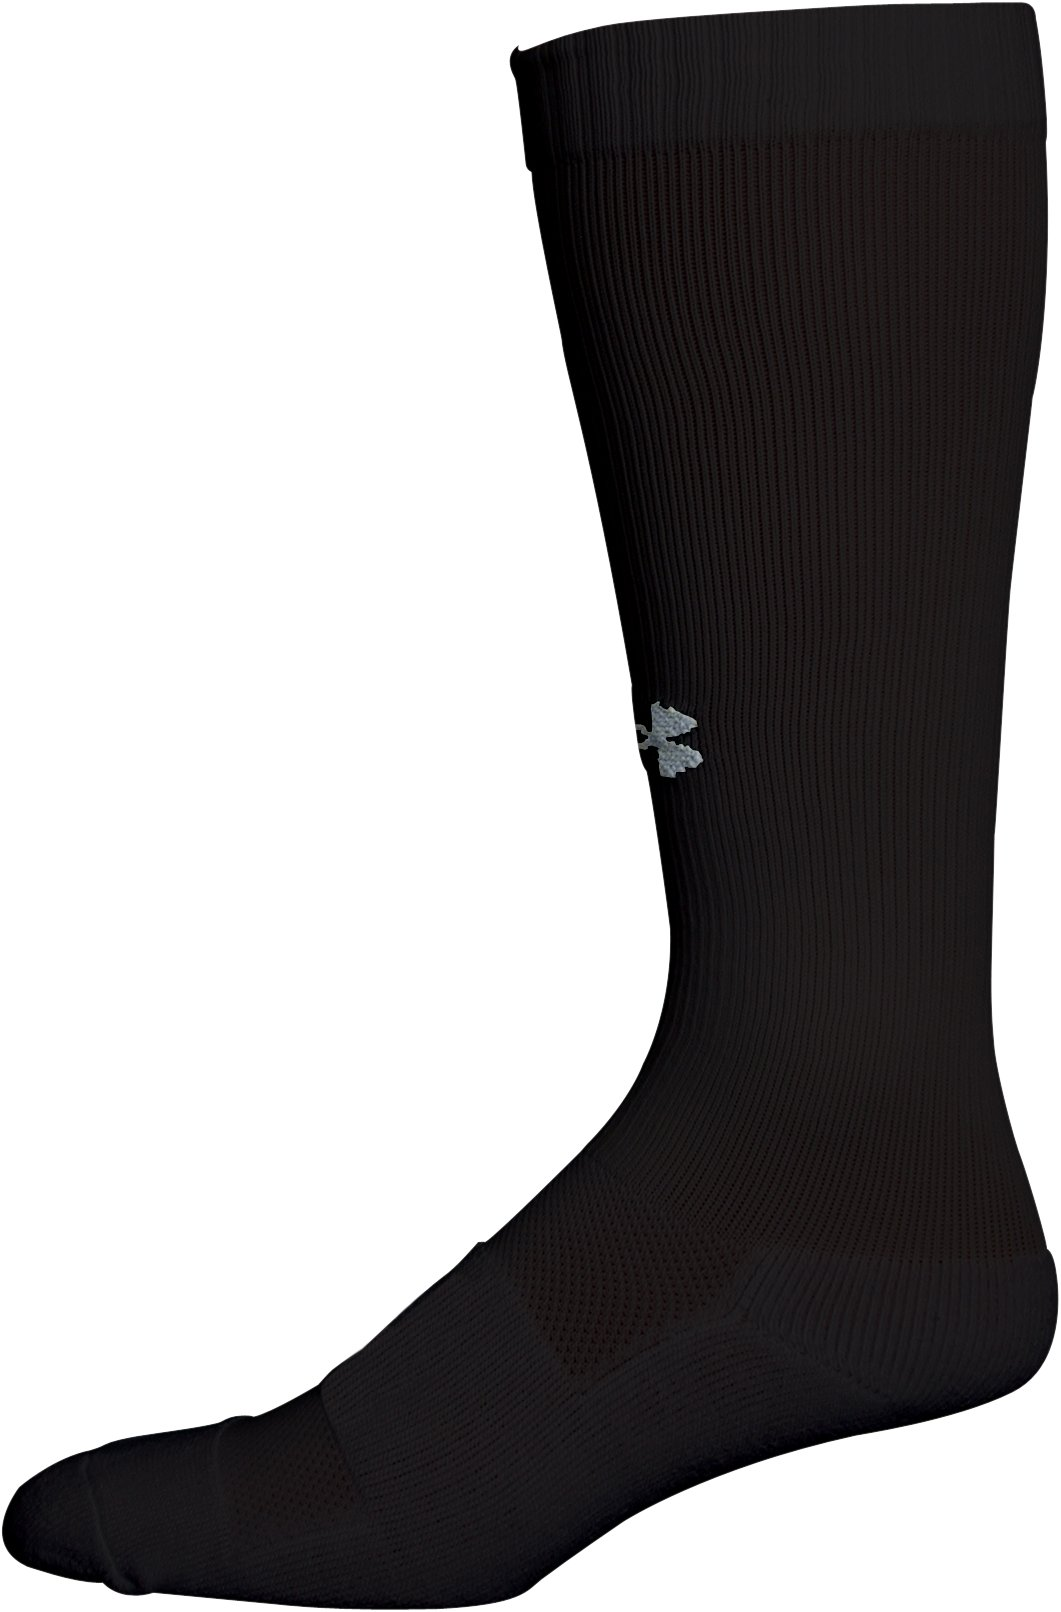 Youth AllSport Socks, Black , zoomed image